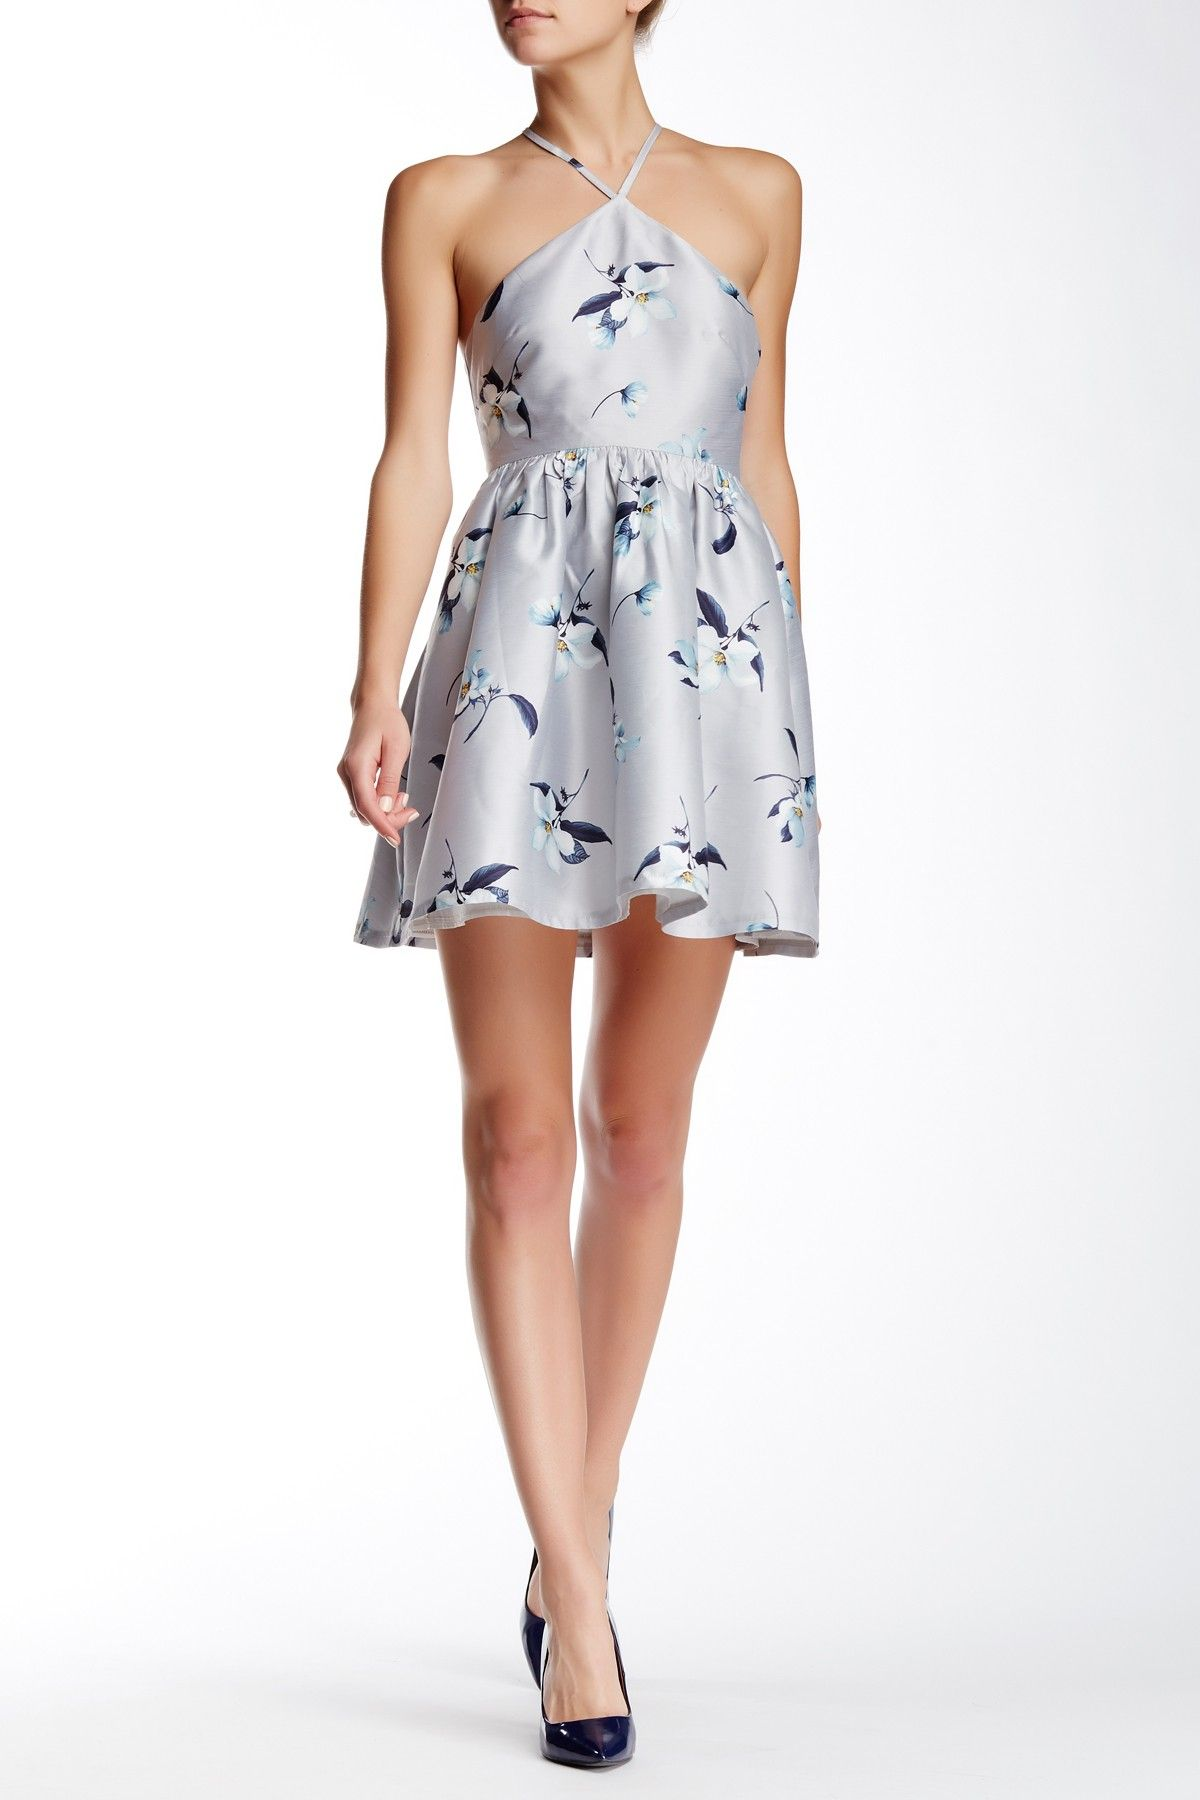 Floral print wedding dresses  Floral Print Dress by LuAtiste on HauteLook  Wedding Attire